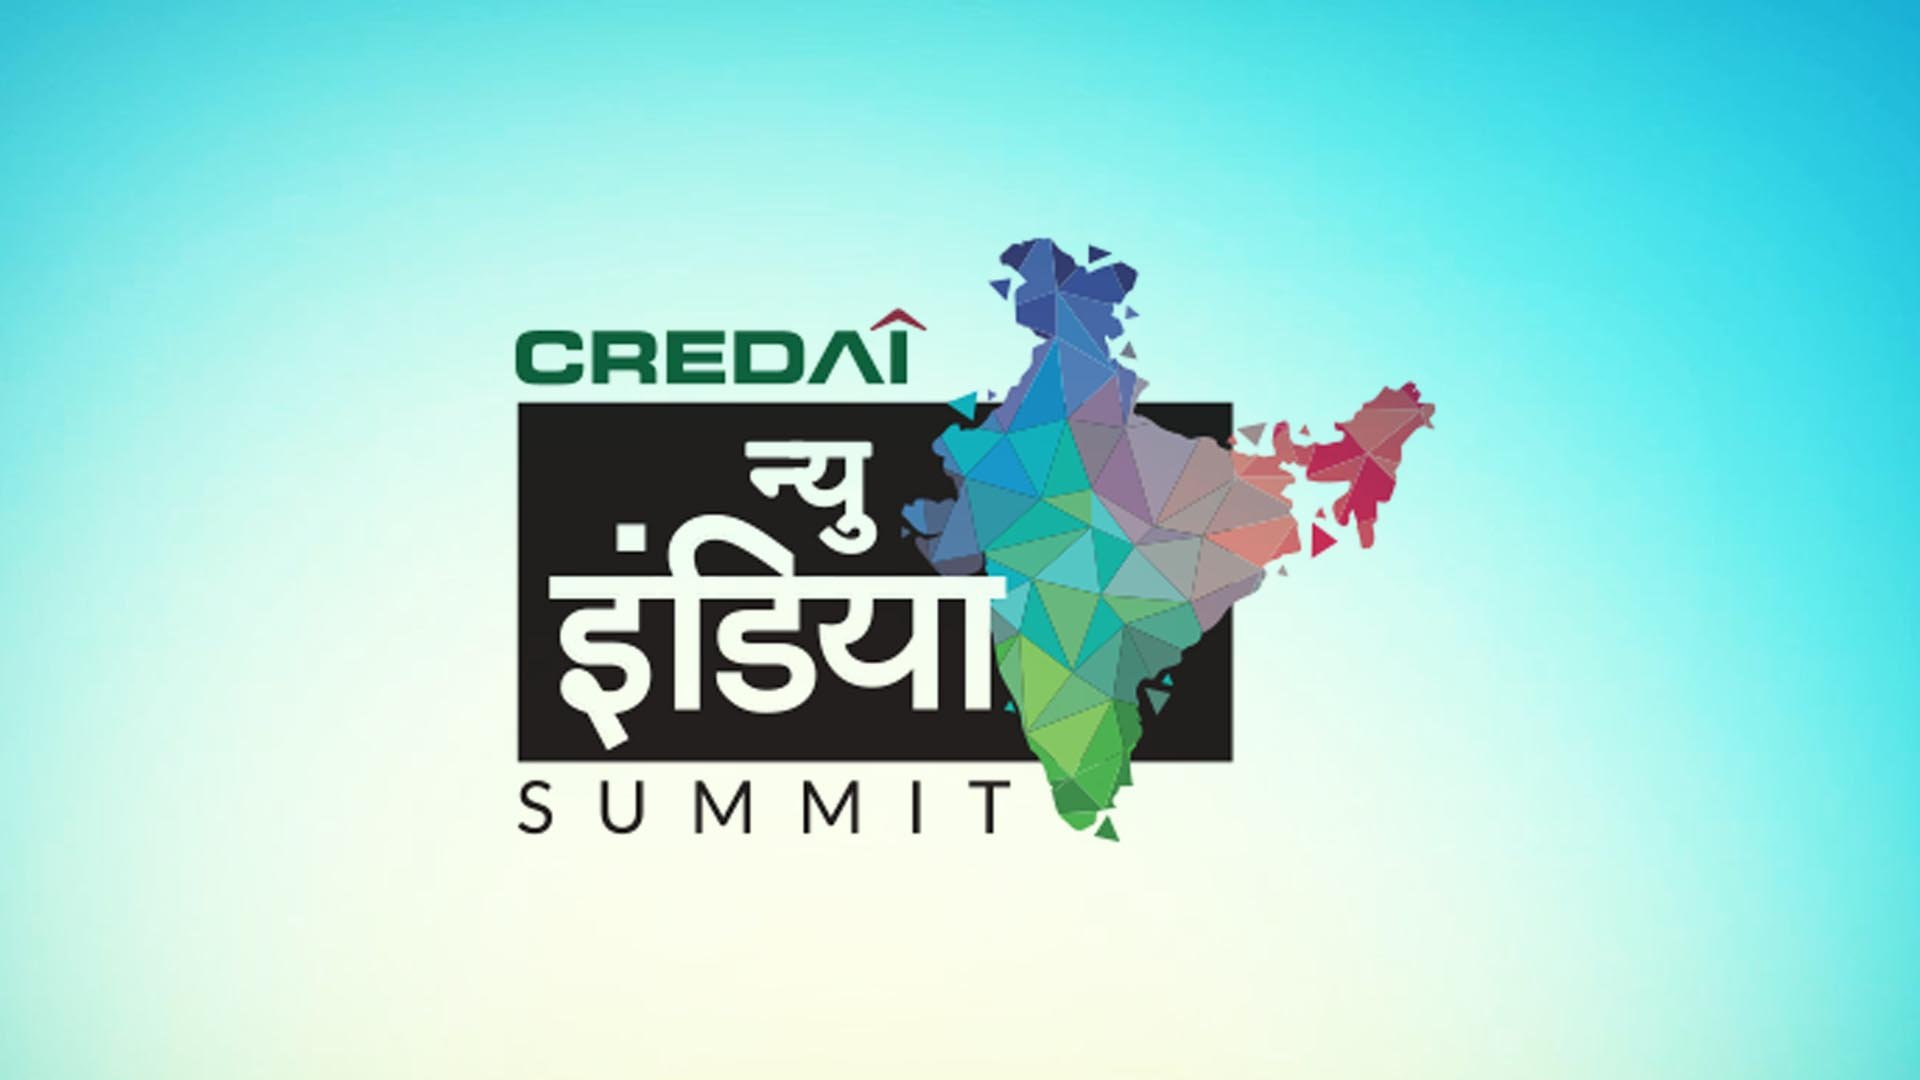 credai new india summit